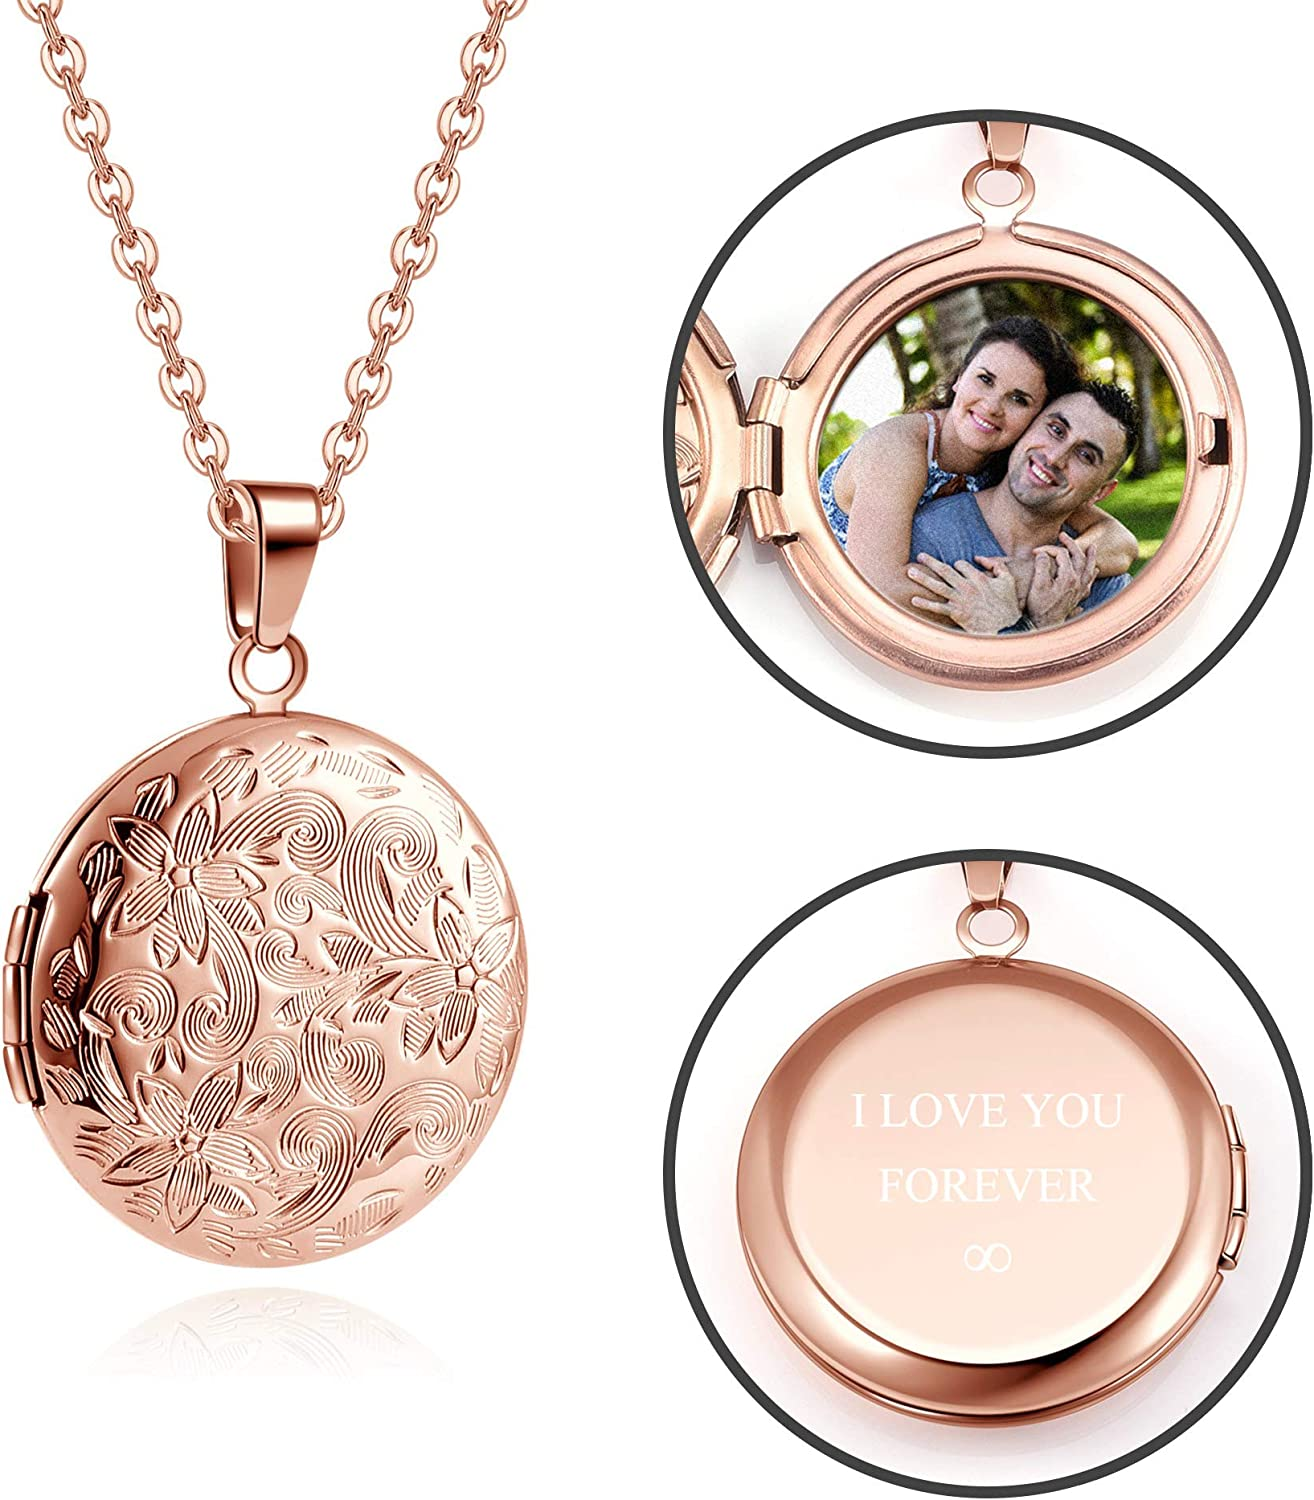 Personalized Master Custom Photo Locket Necklace That Holds Pictures Stainless Steel Photo Text Necklace for Women Girls Mother's Day Birthday